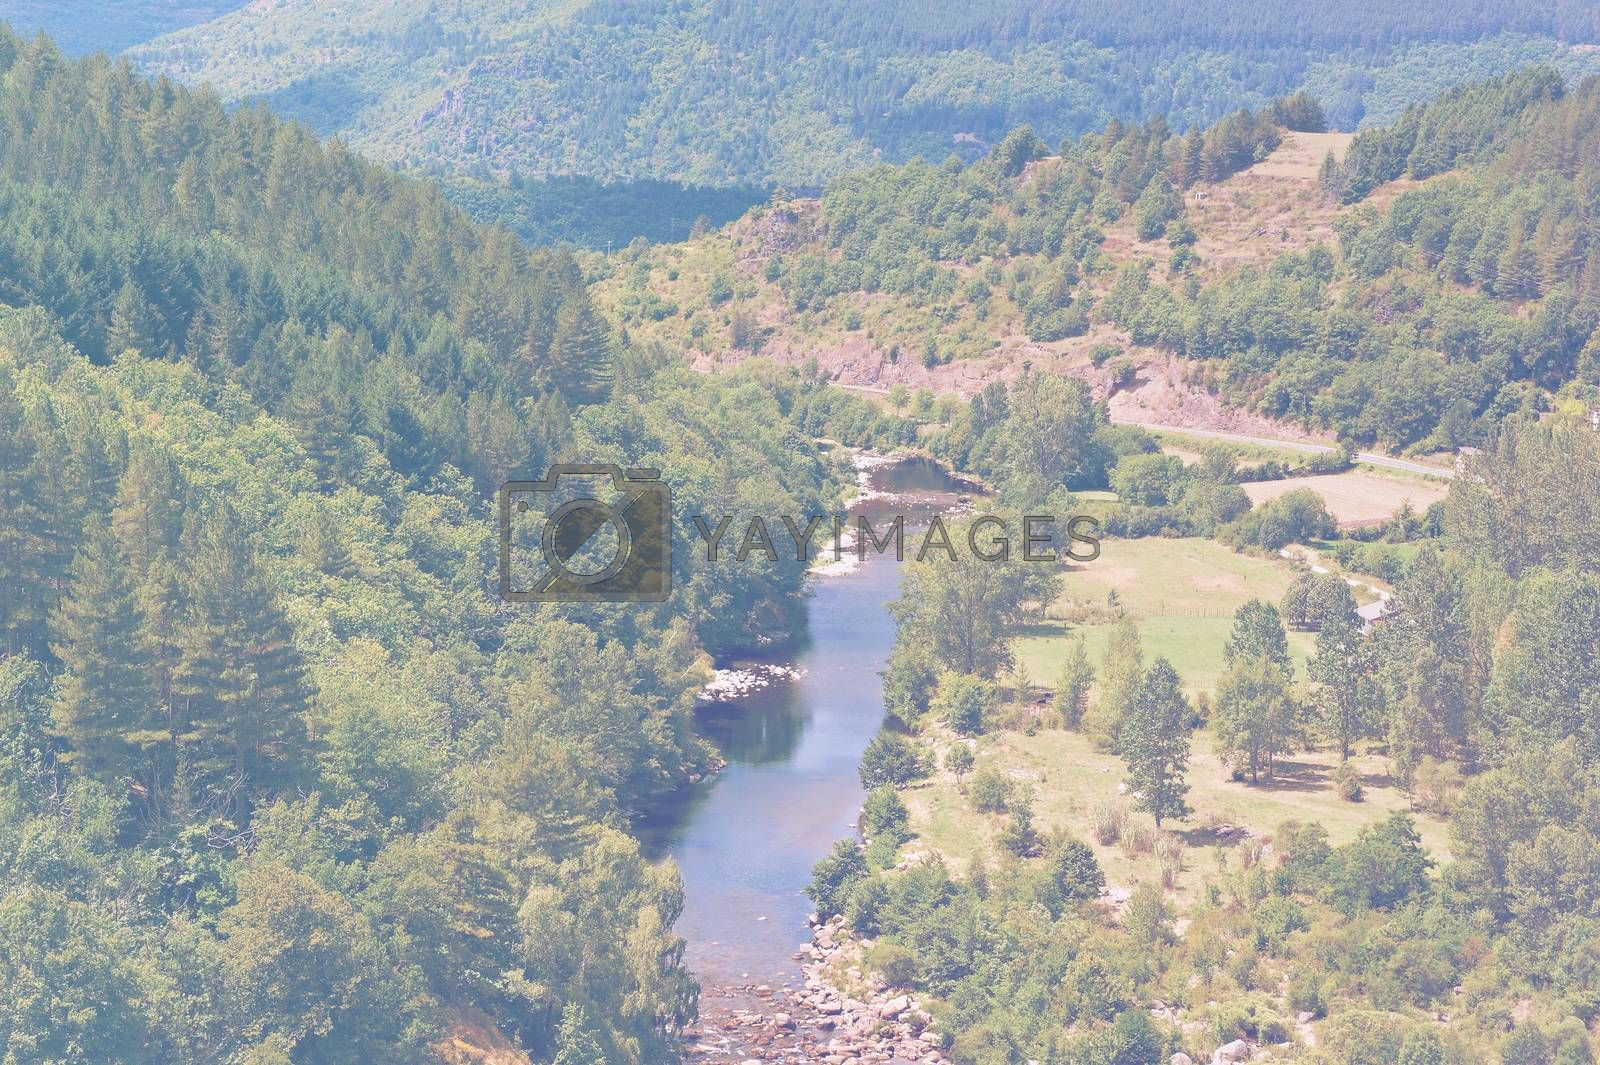 Deserted landscape in France in faded color effect. Lack of tourists on the banks of a mountain river in the French Alps.